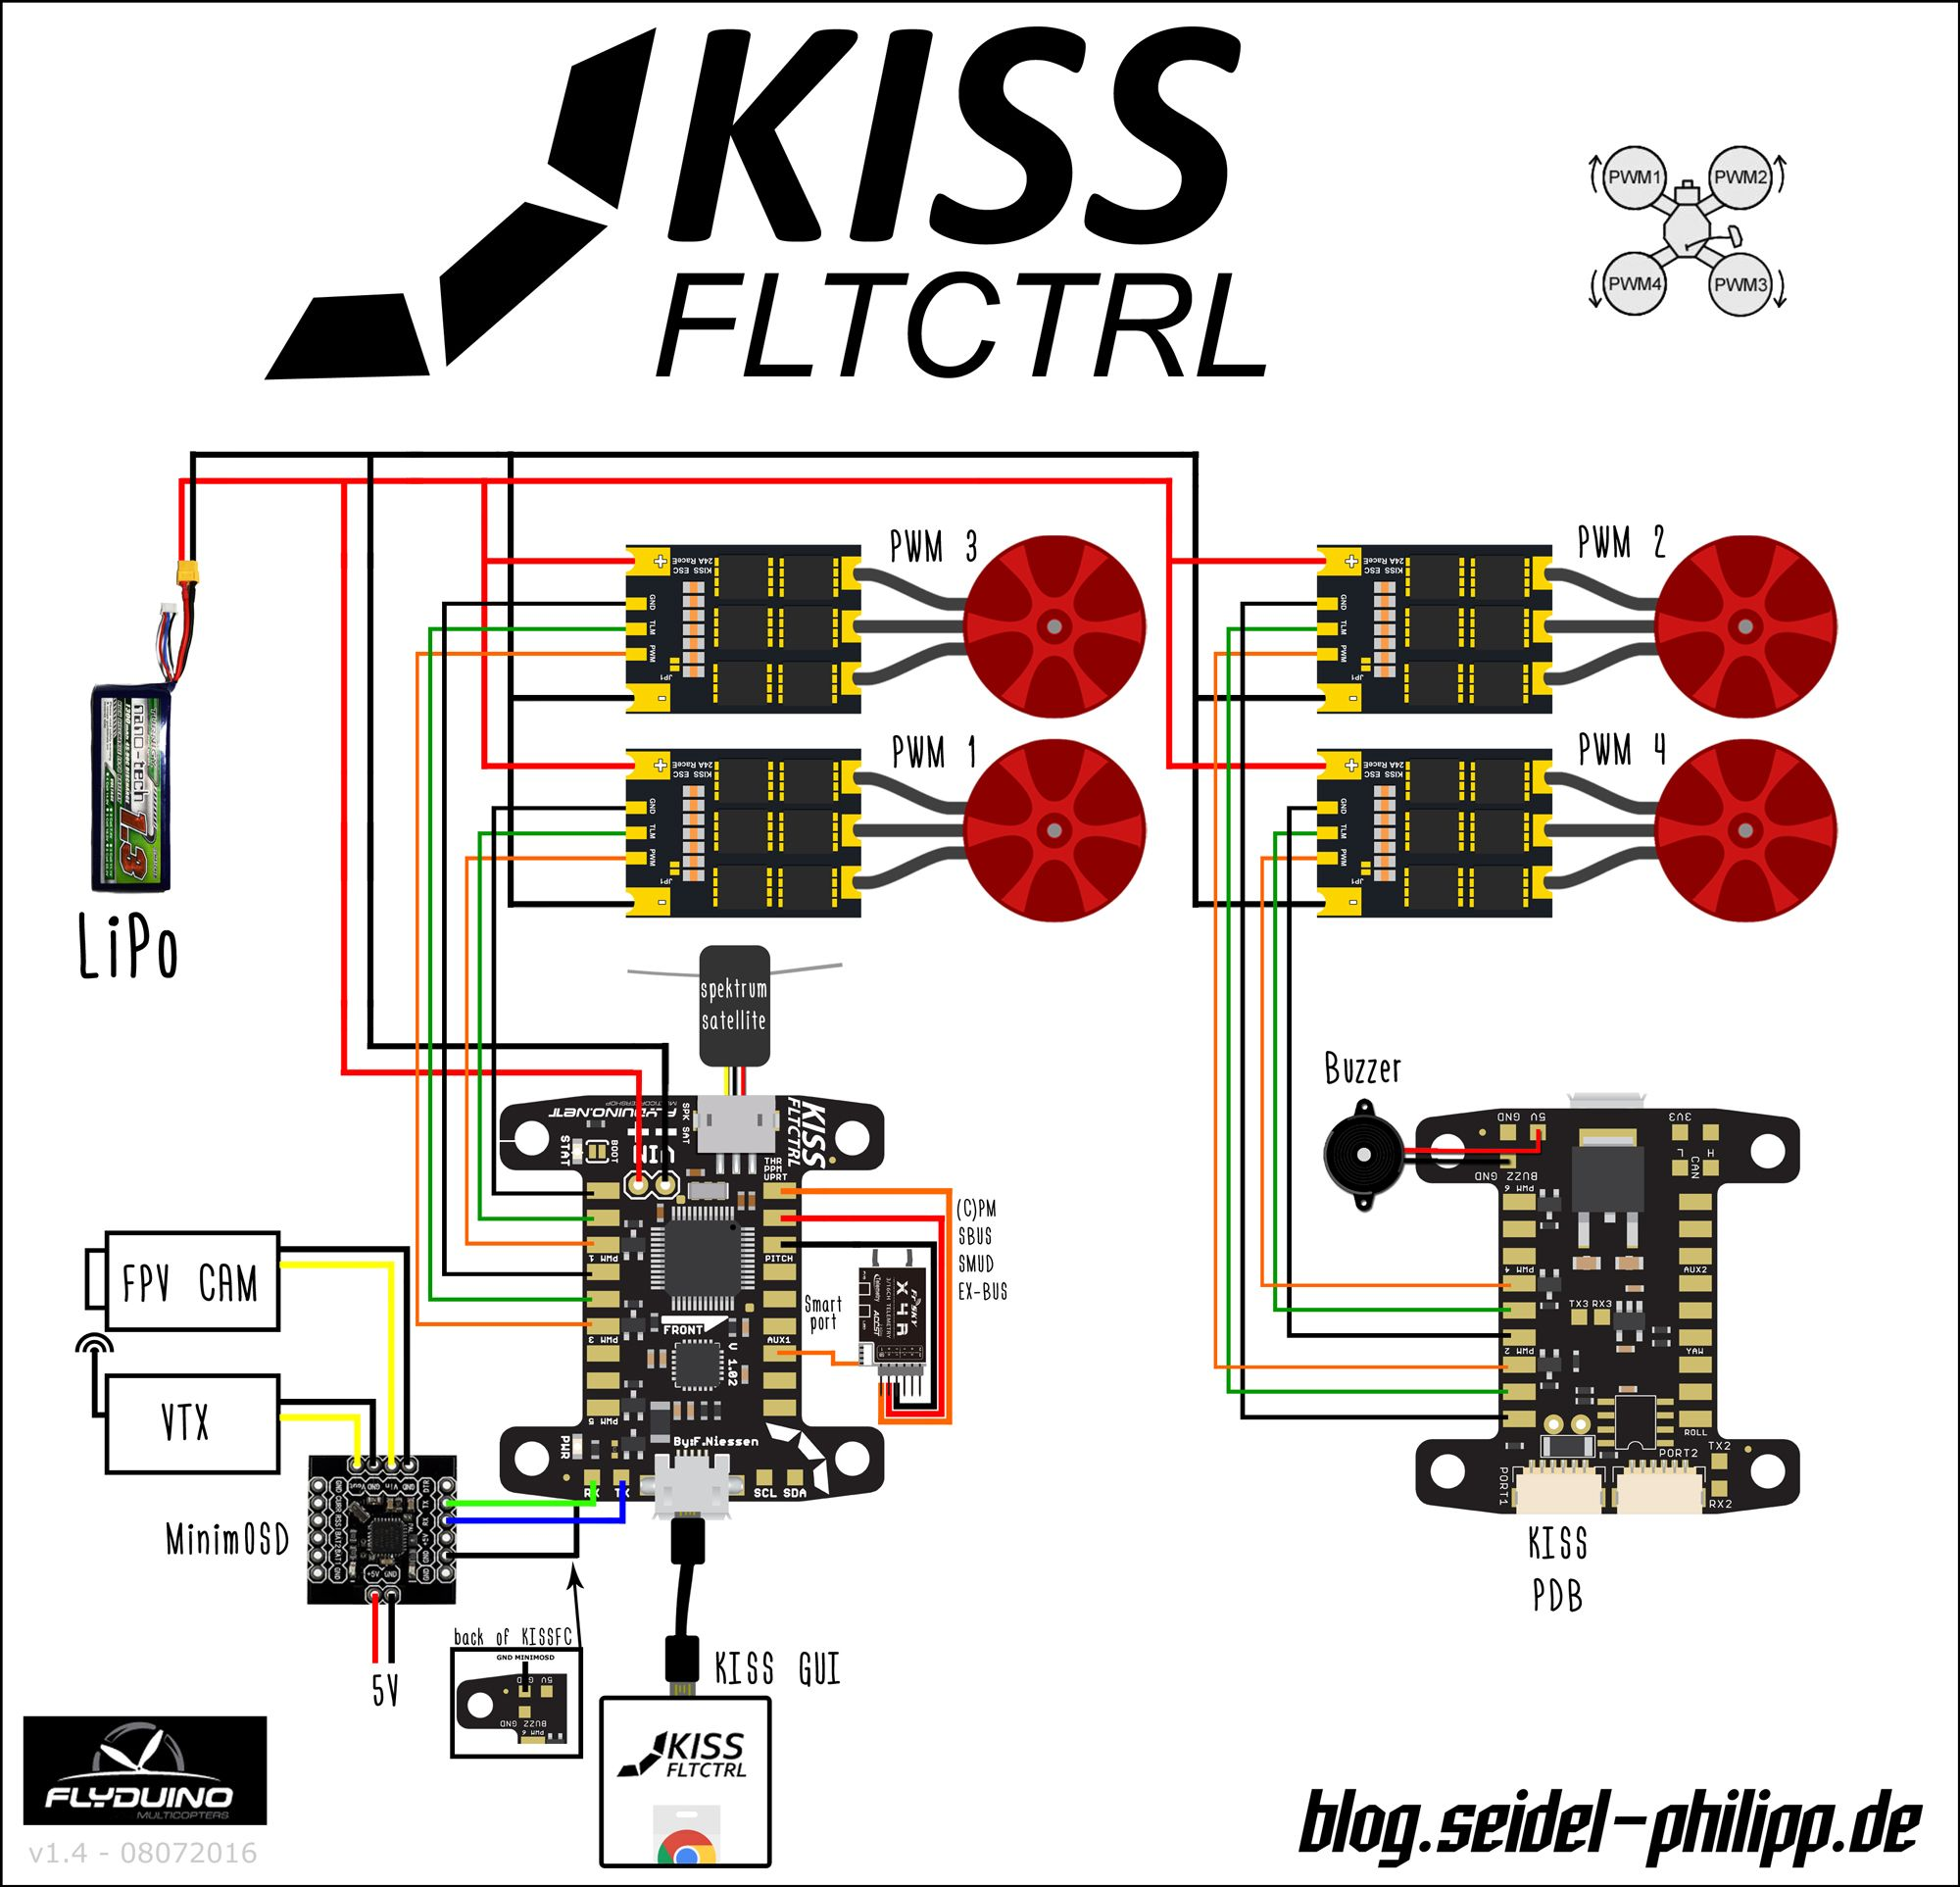 Kiss Fc Connection Diagram Racing Drones In 2018 Pinterest. Kiss Fc Connection Diagram. Wiring. Syma X8 Wiring Diagram At Scoala.co